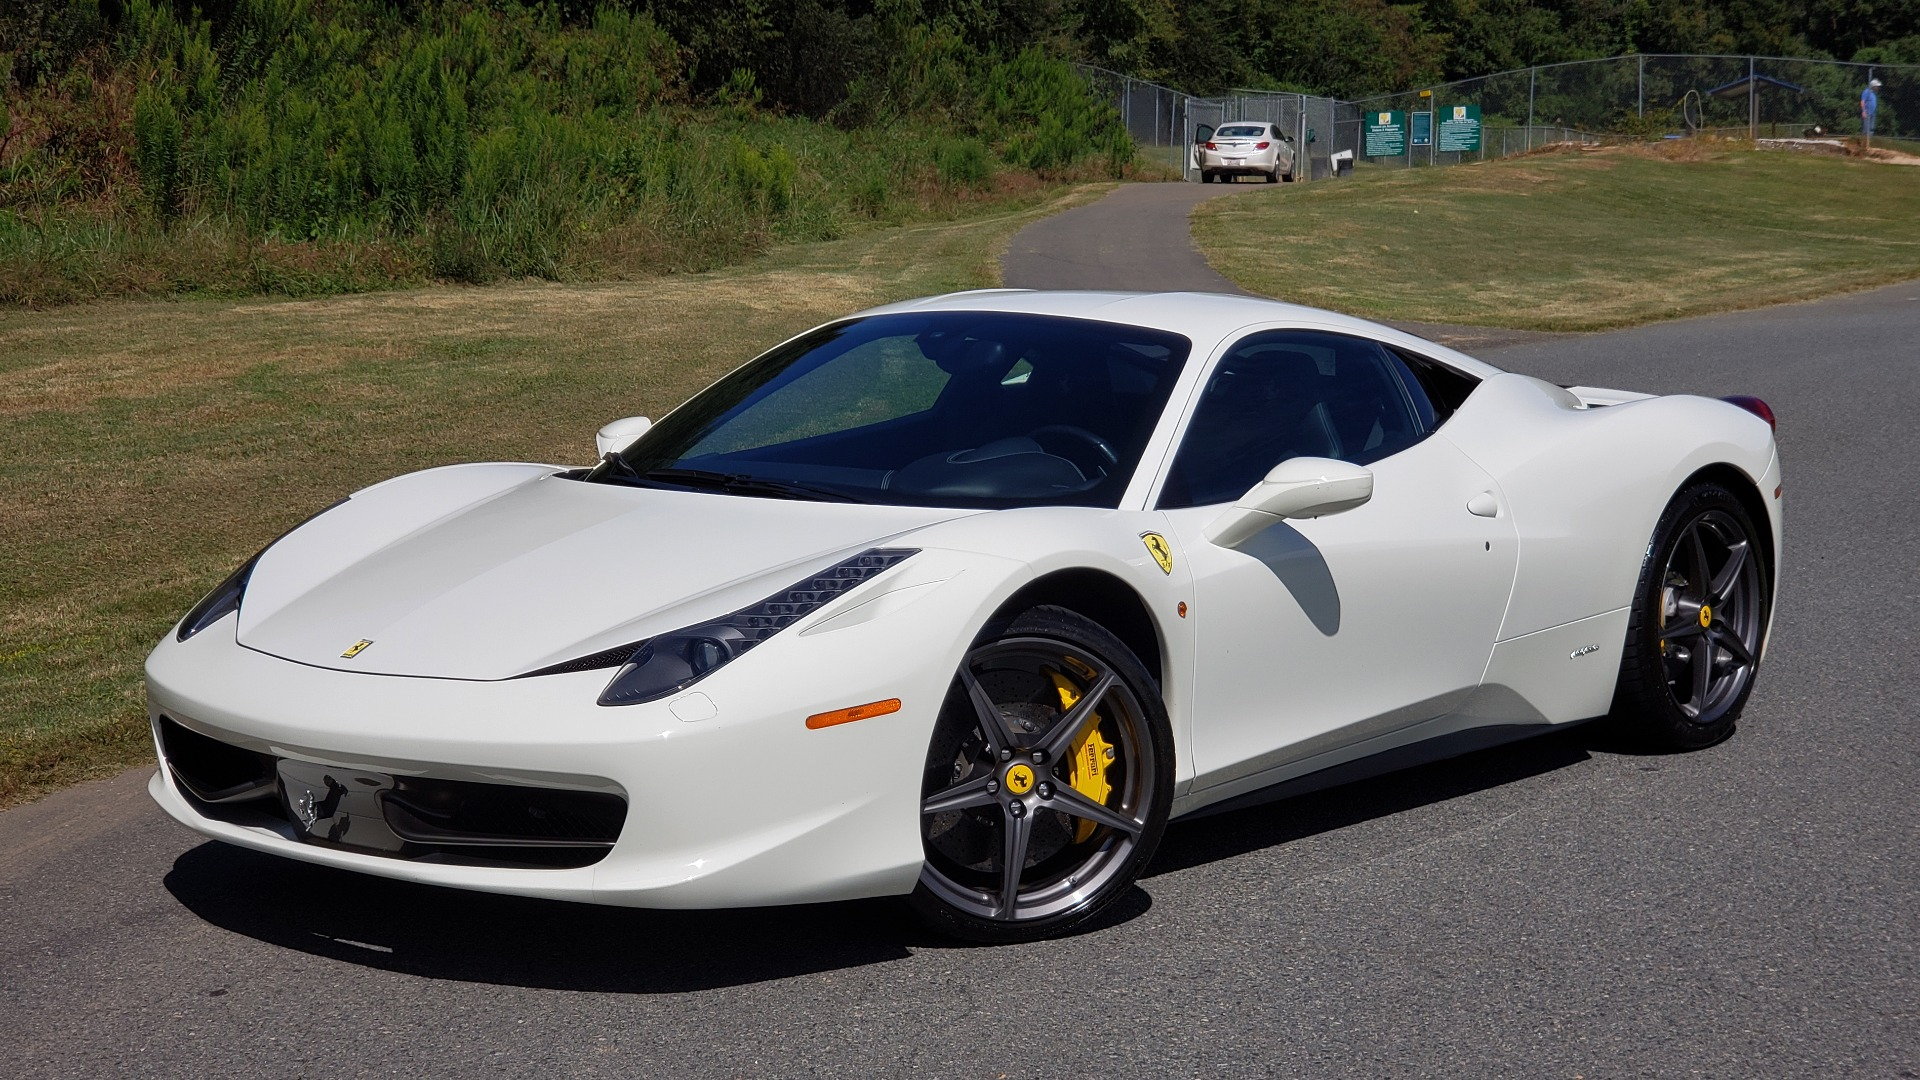 Used 2012 Ferrari 458 ITALIA COUPE / 4.5L V8 / 7-SPEED AUTO / LOW MILES SUPER CLEAN for sale $169,999 at Formula Imports in Charlotte NC 28227 1